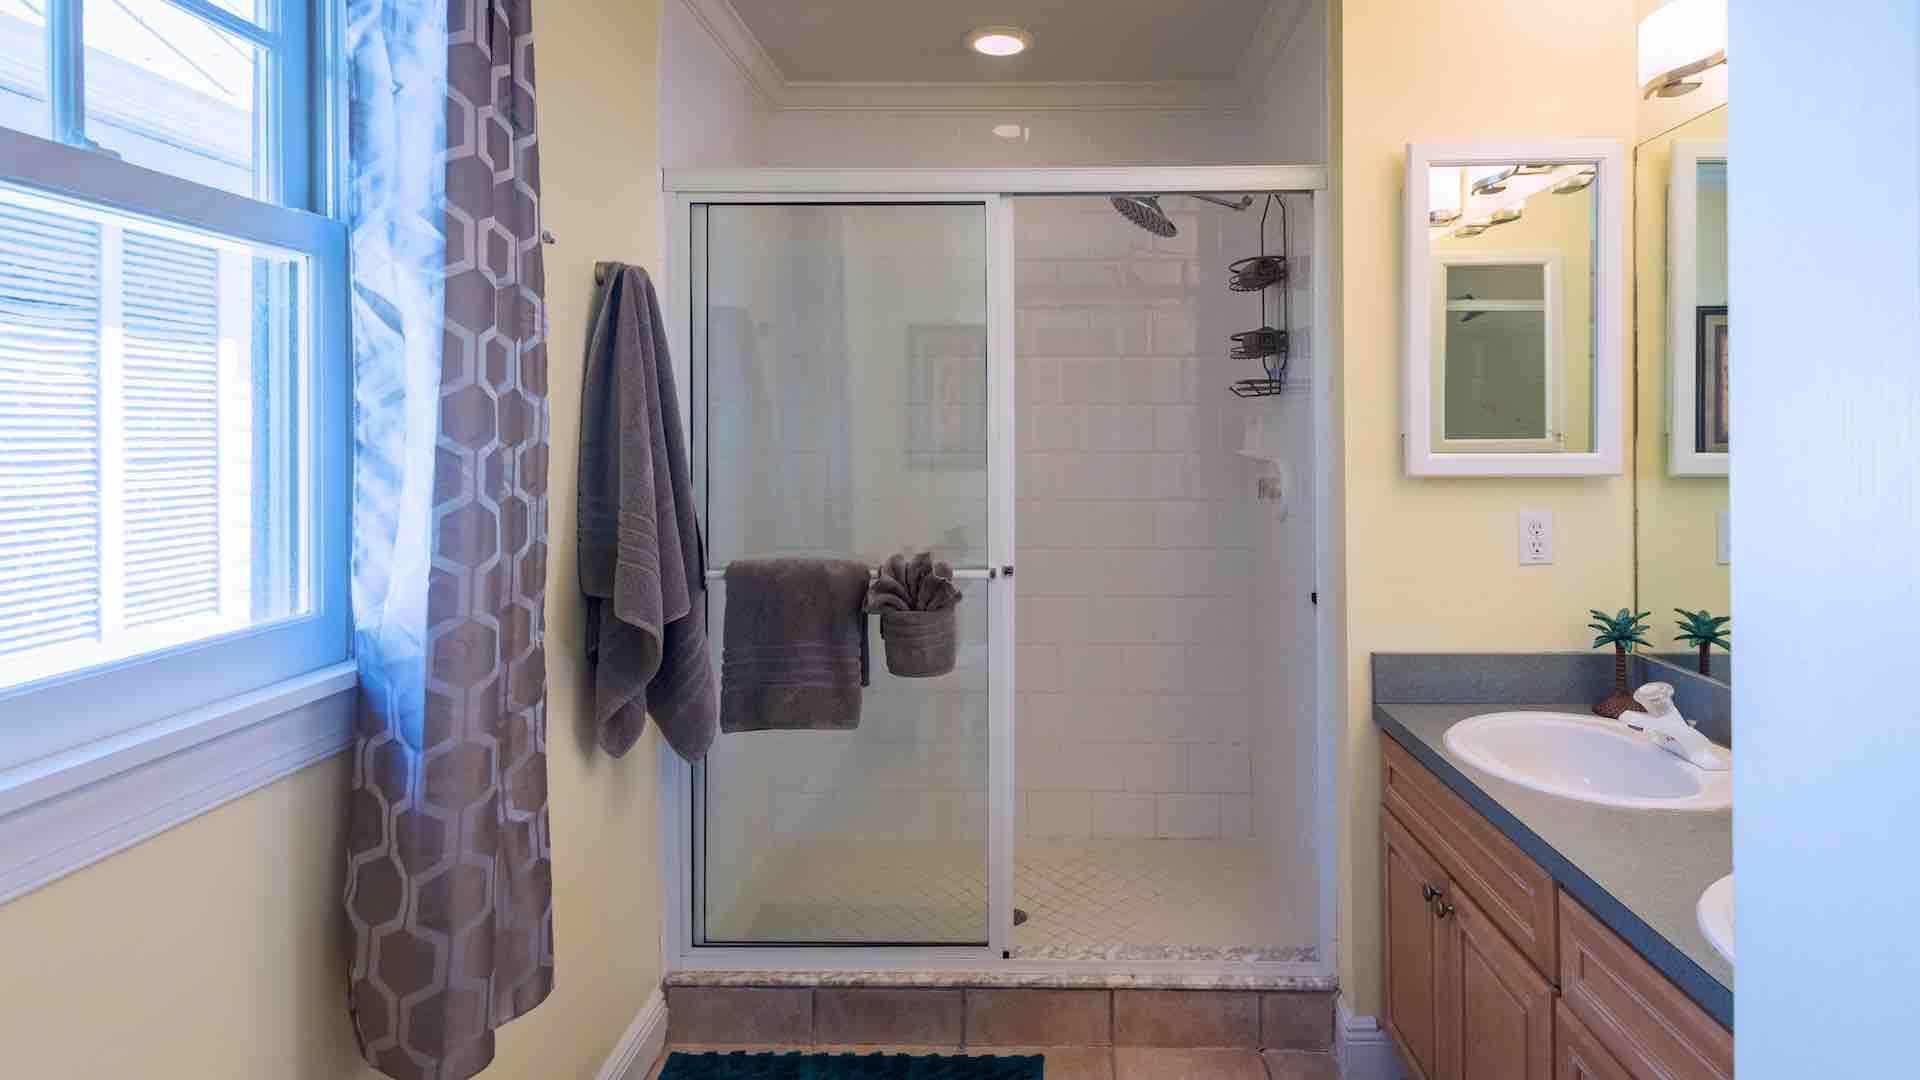 The master bathroom is en suite, with a walk-in shower...